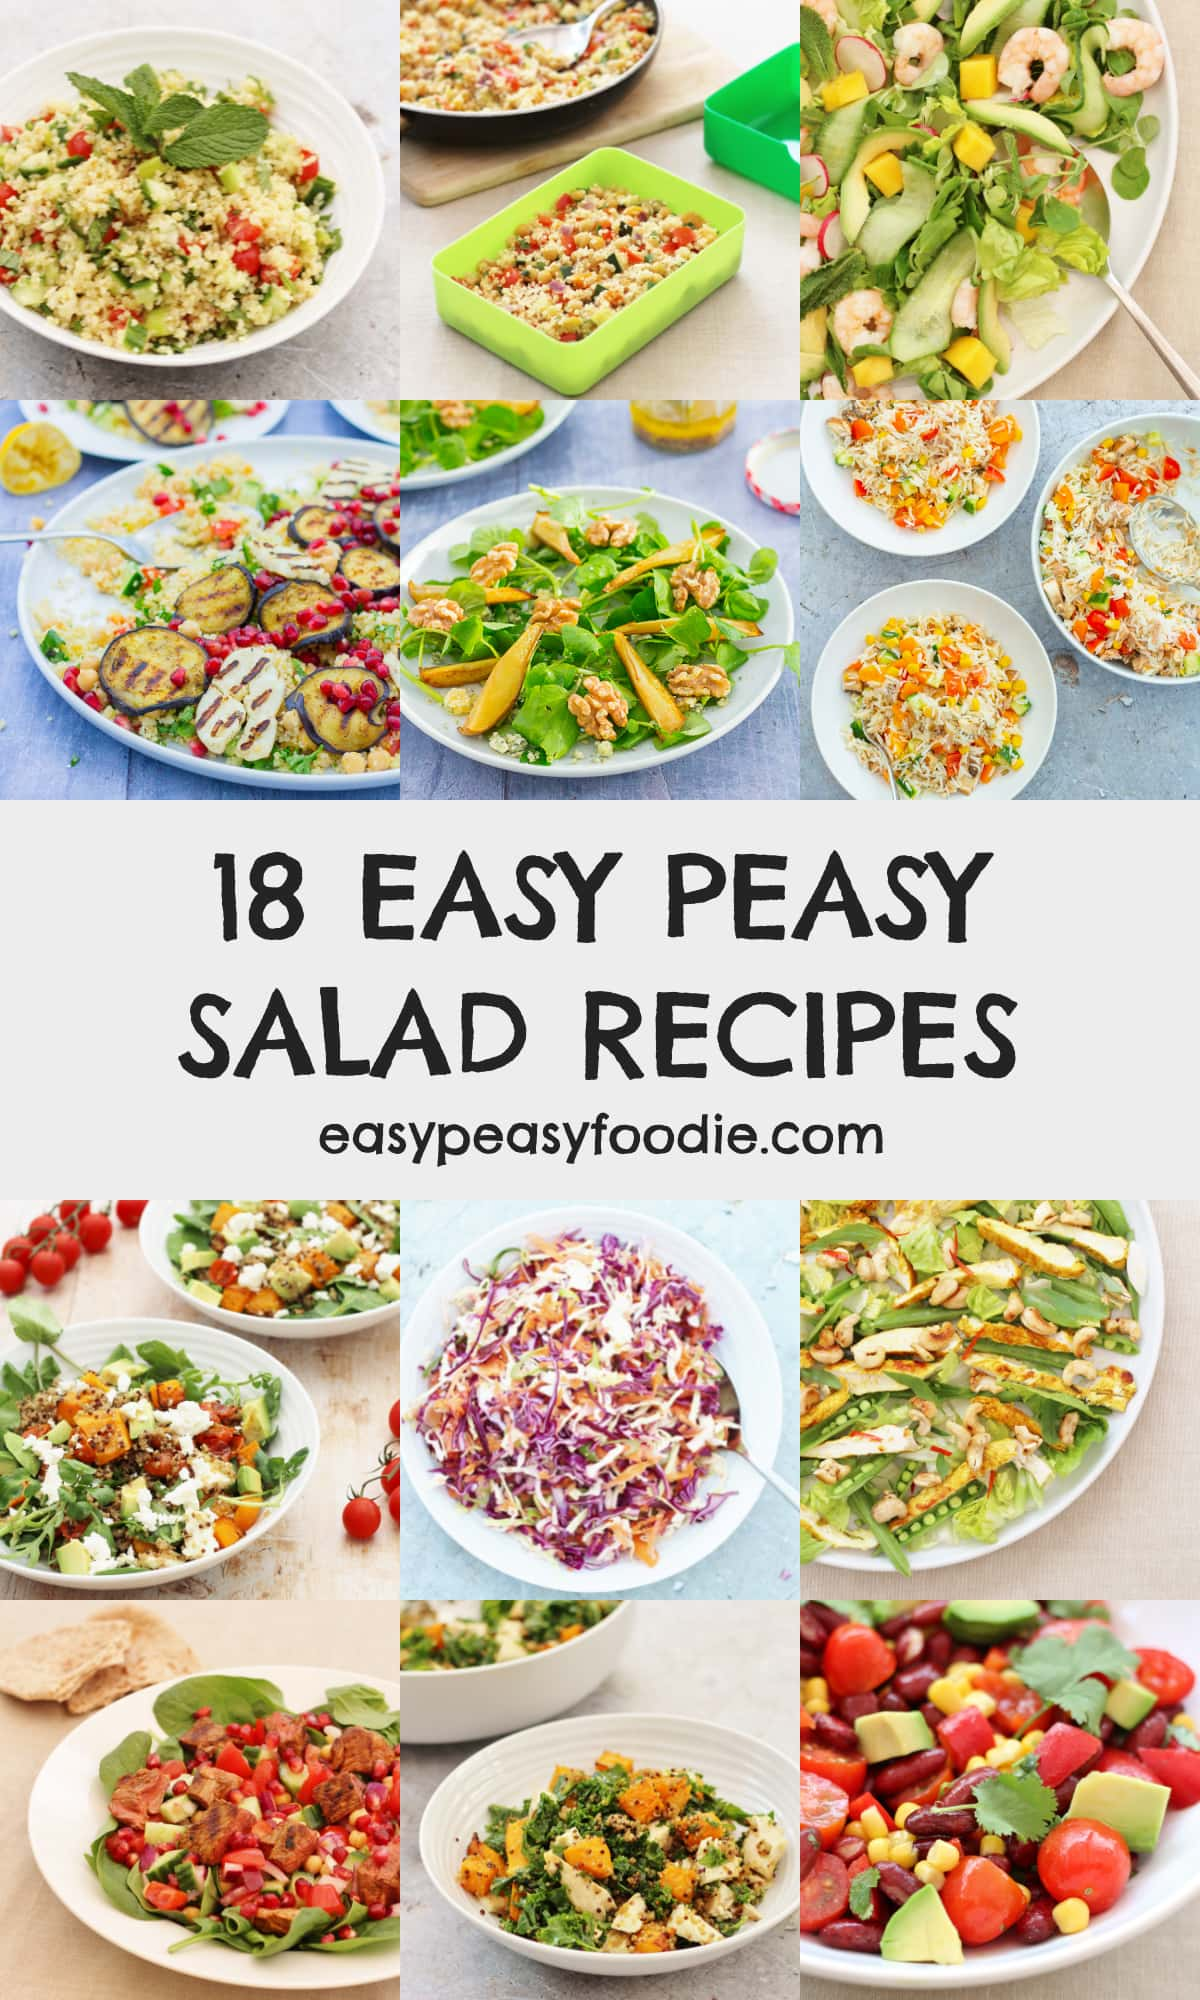 18 Easy Peasy Salad Recipes - pinnable image for Pinterest